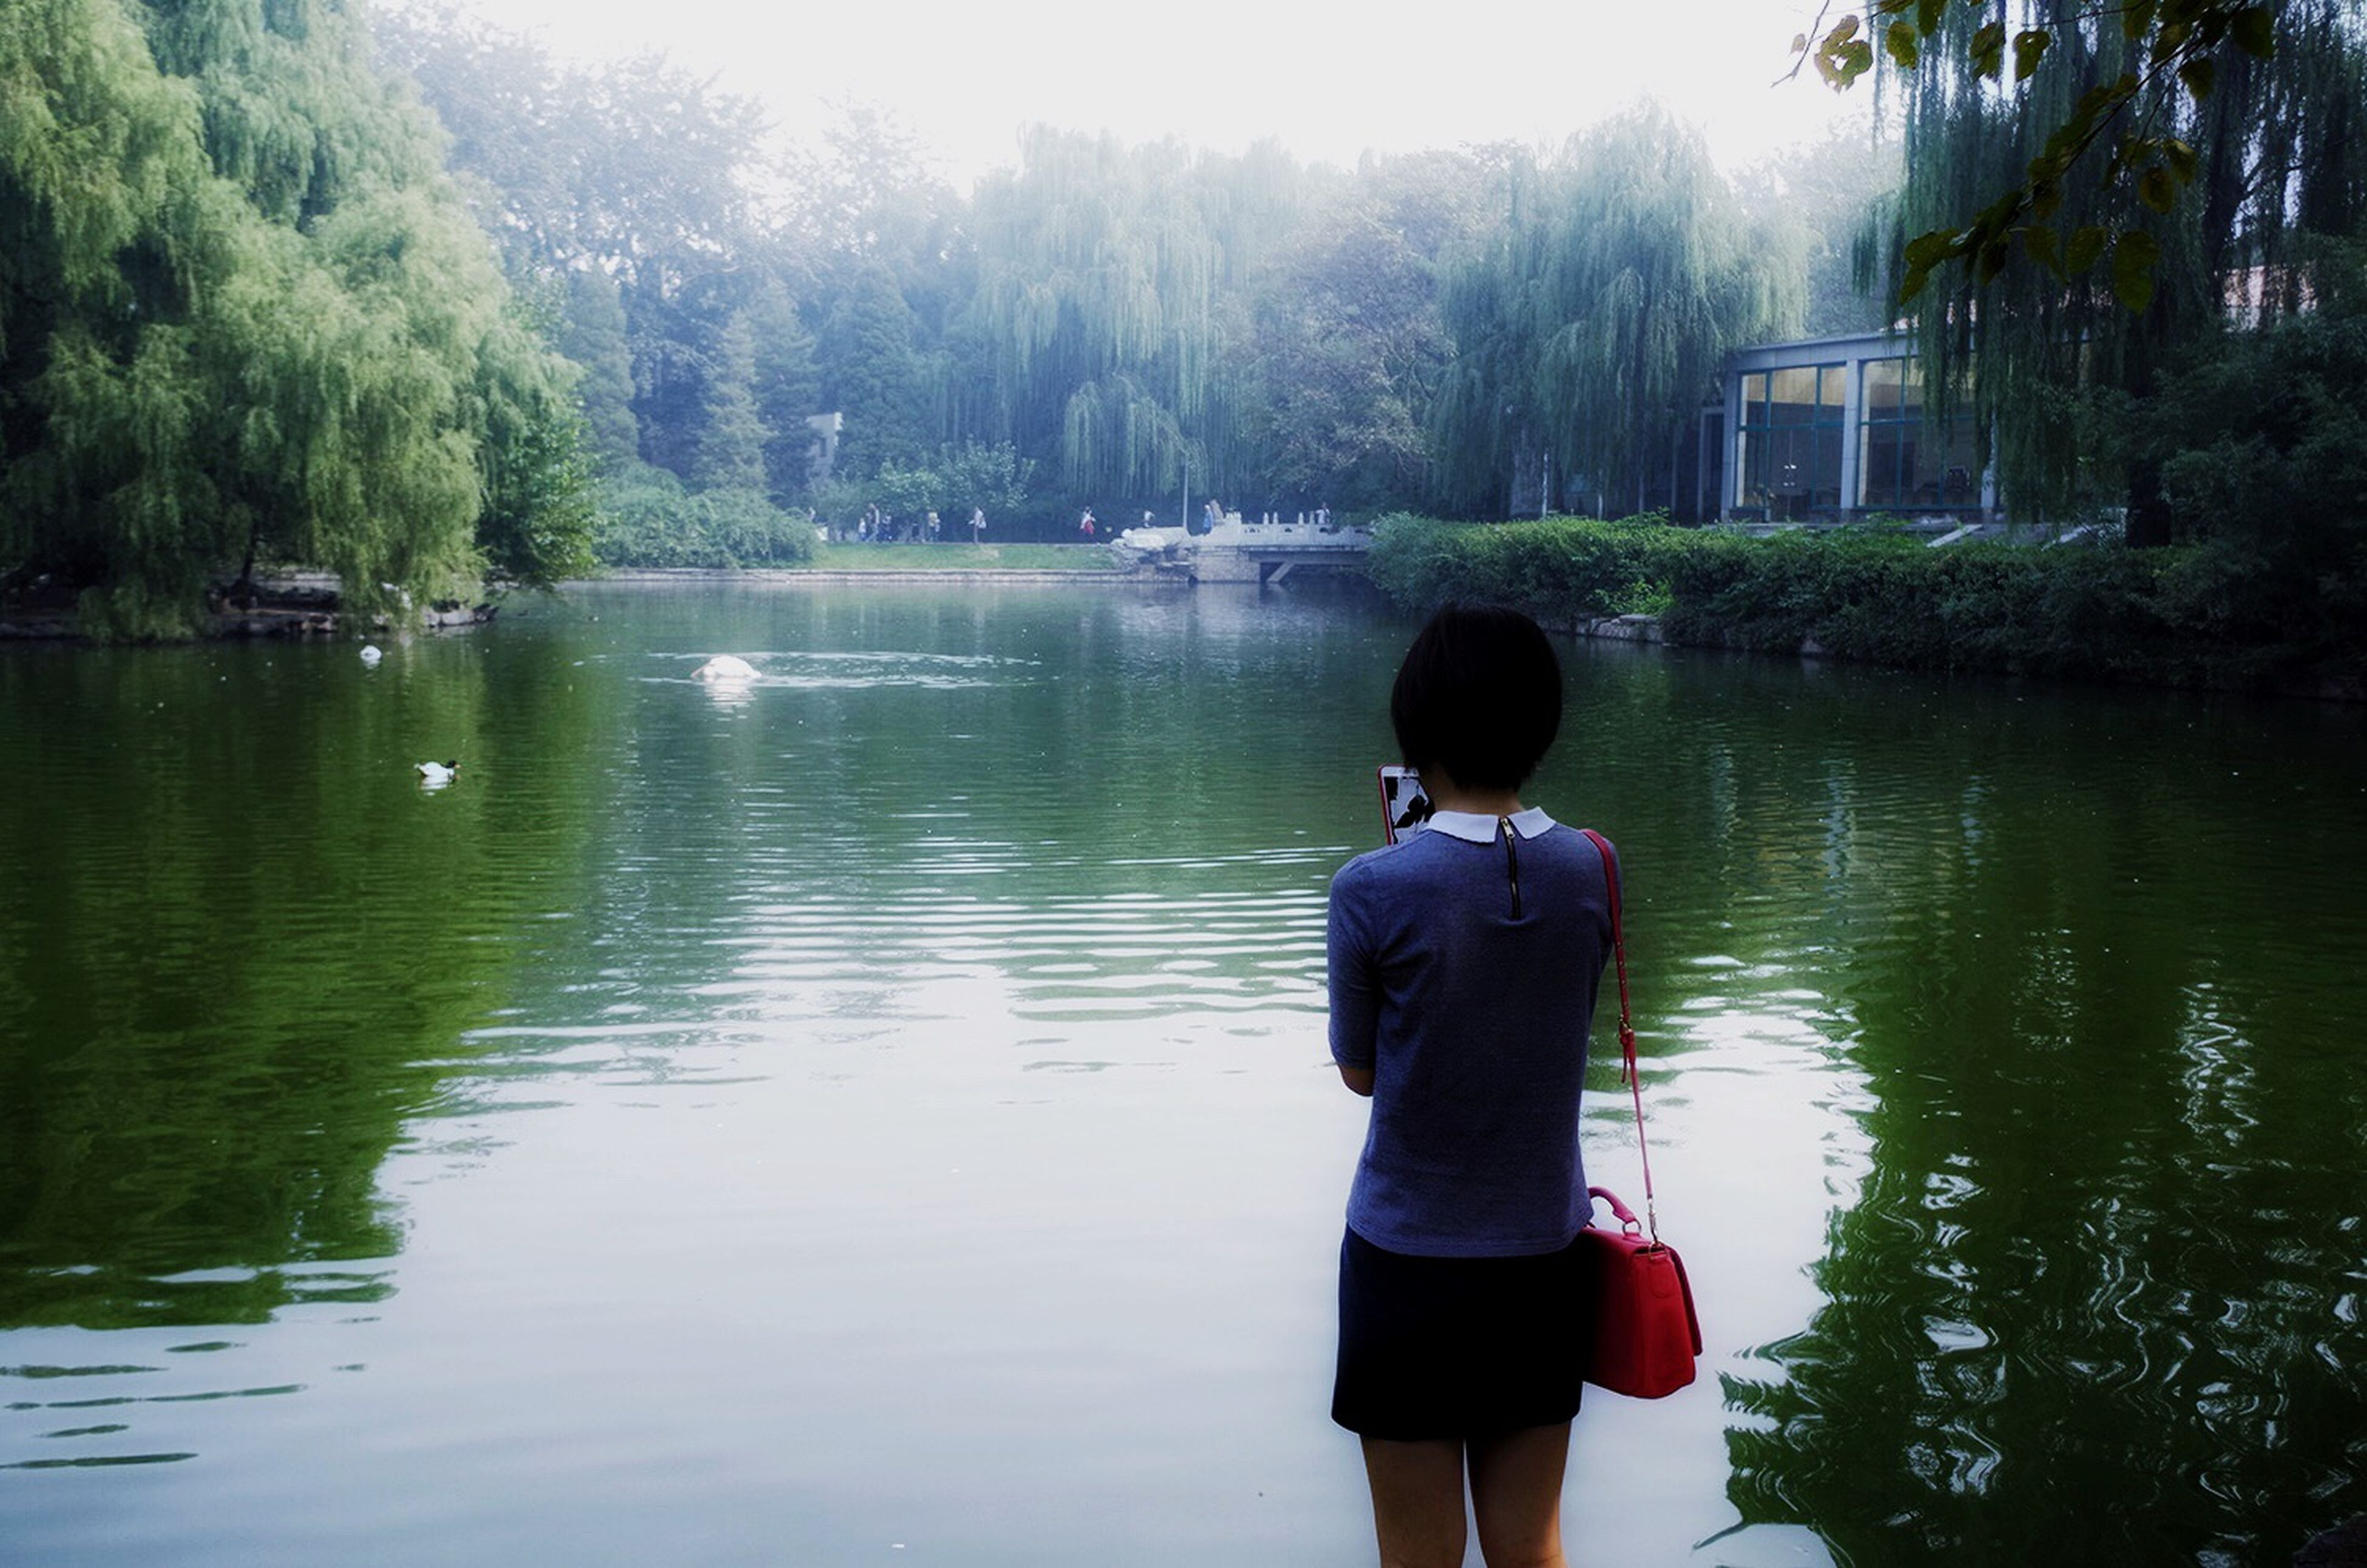 water, tree, rear view, lifestyles, leisure activity, lake, casual clothing, standing, three quarter length, tranquility, nature, tranquil scene, full length, river, beauty in nature, scenics, men, person